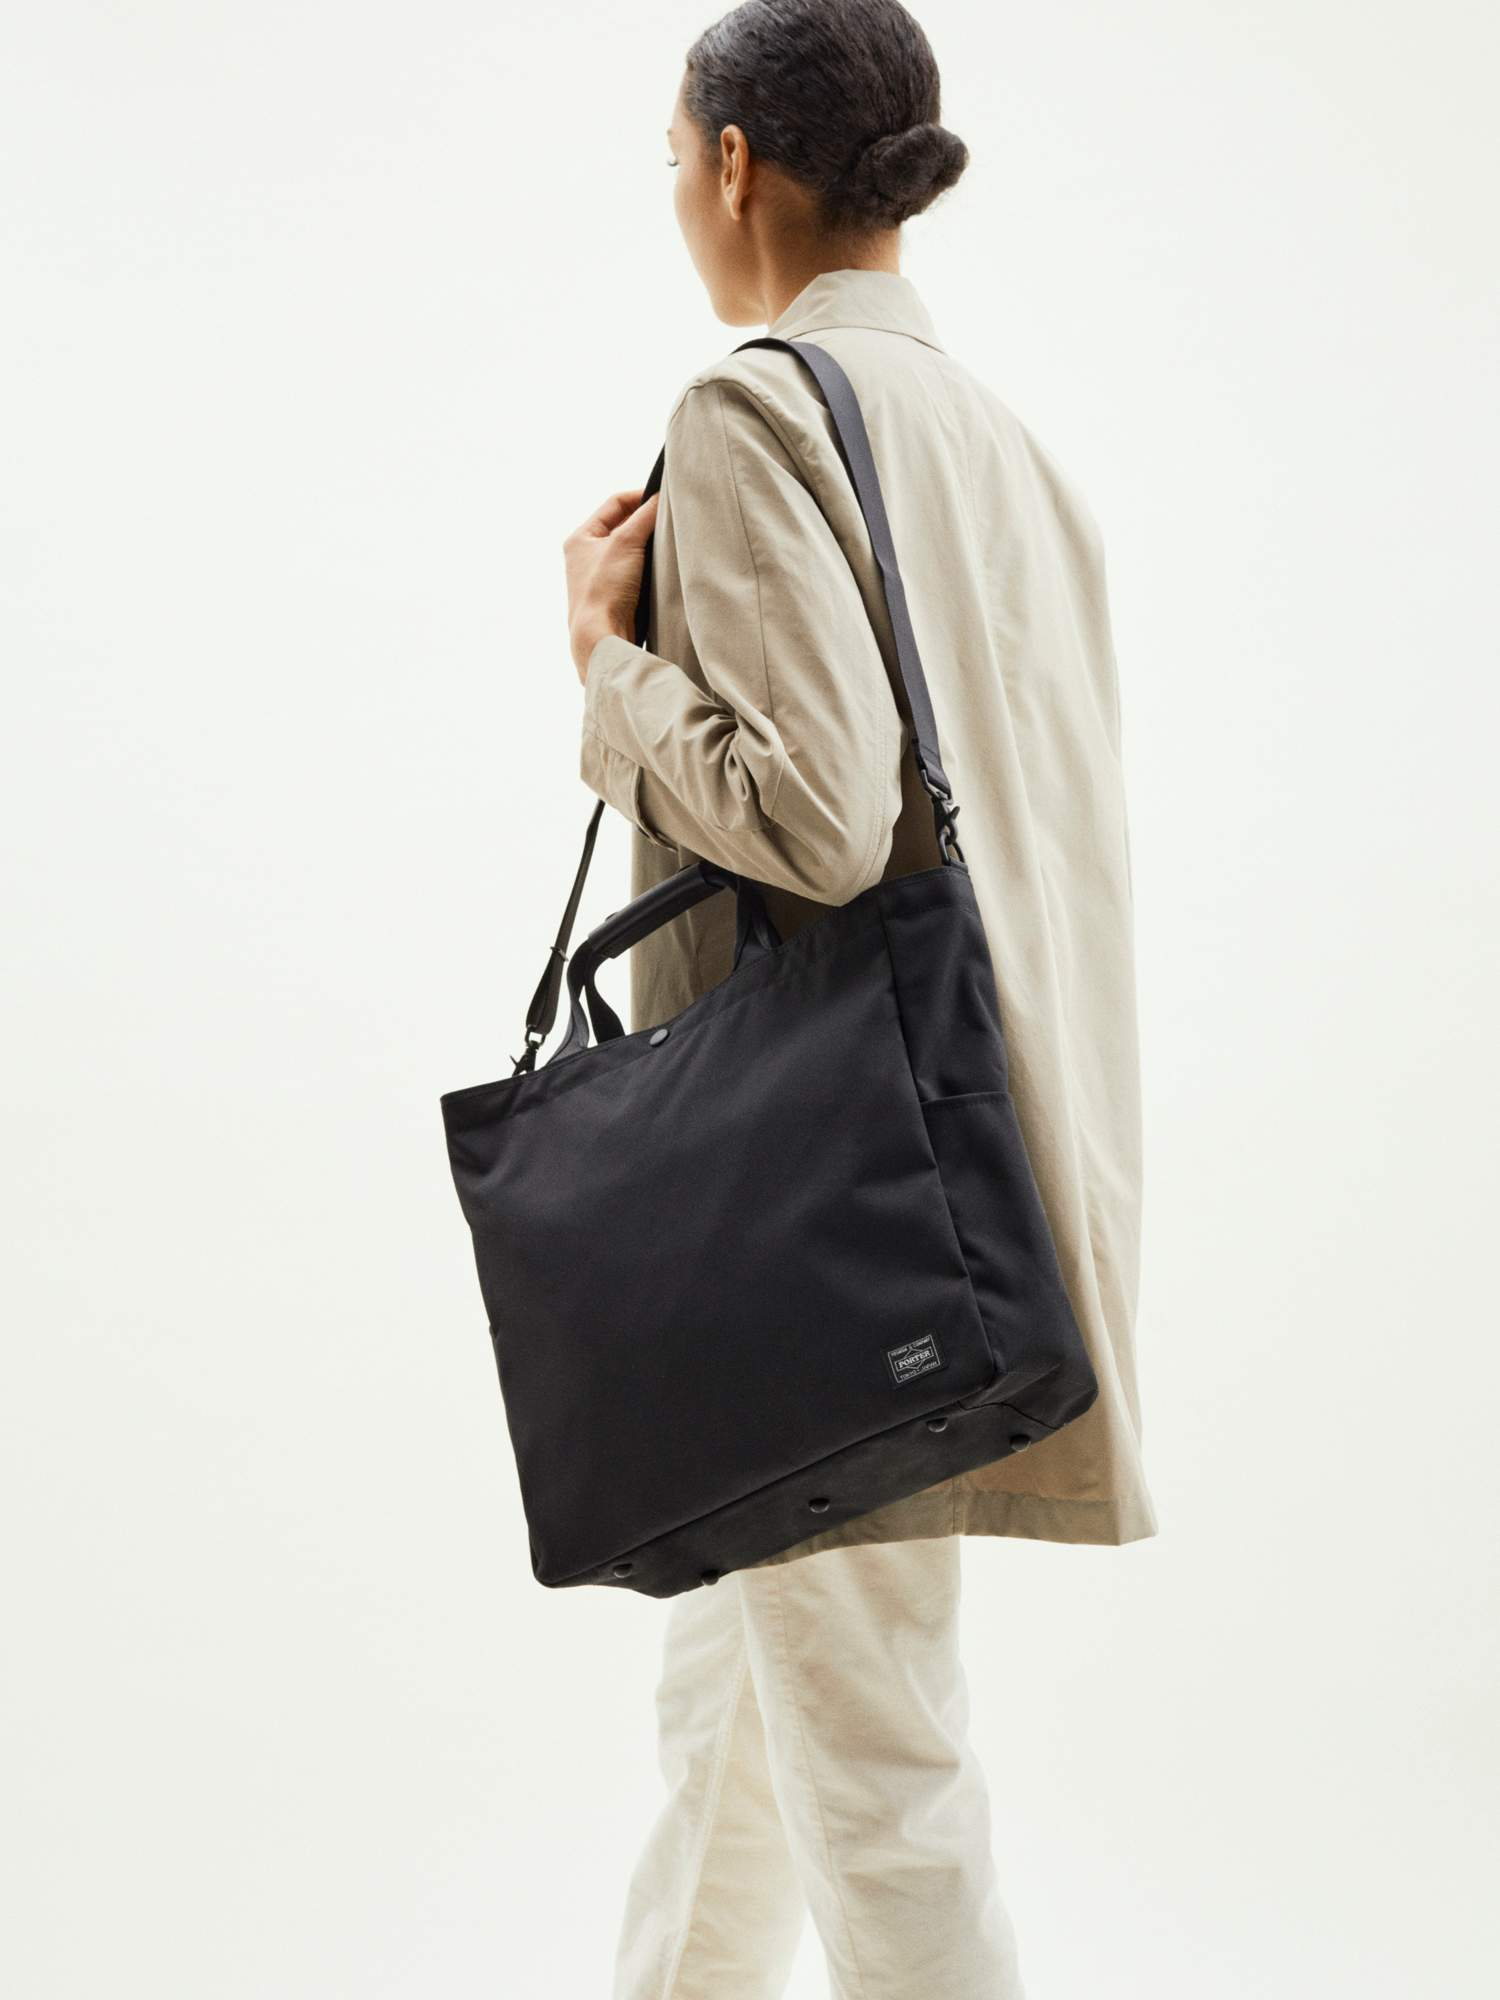 20201204-zip-tote-black-sp_190.jpg